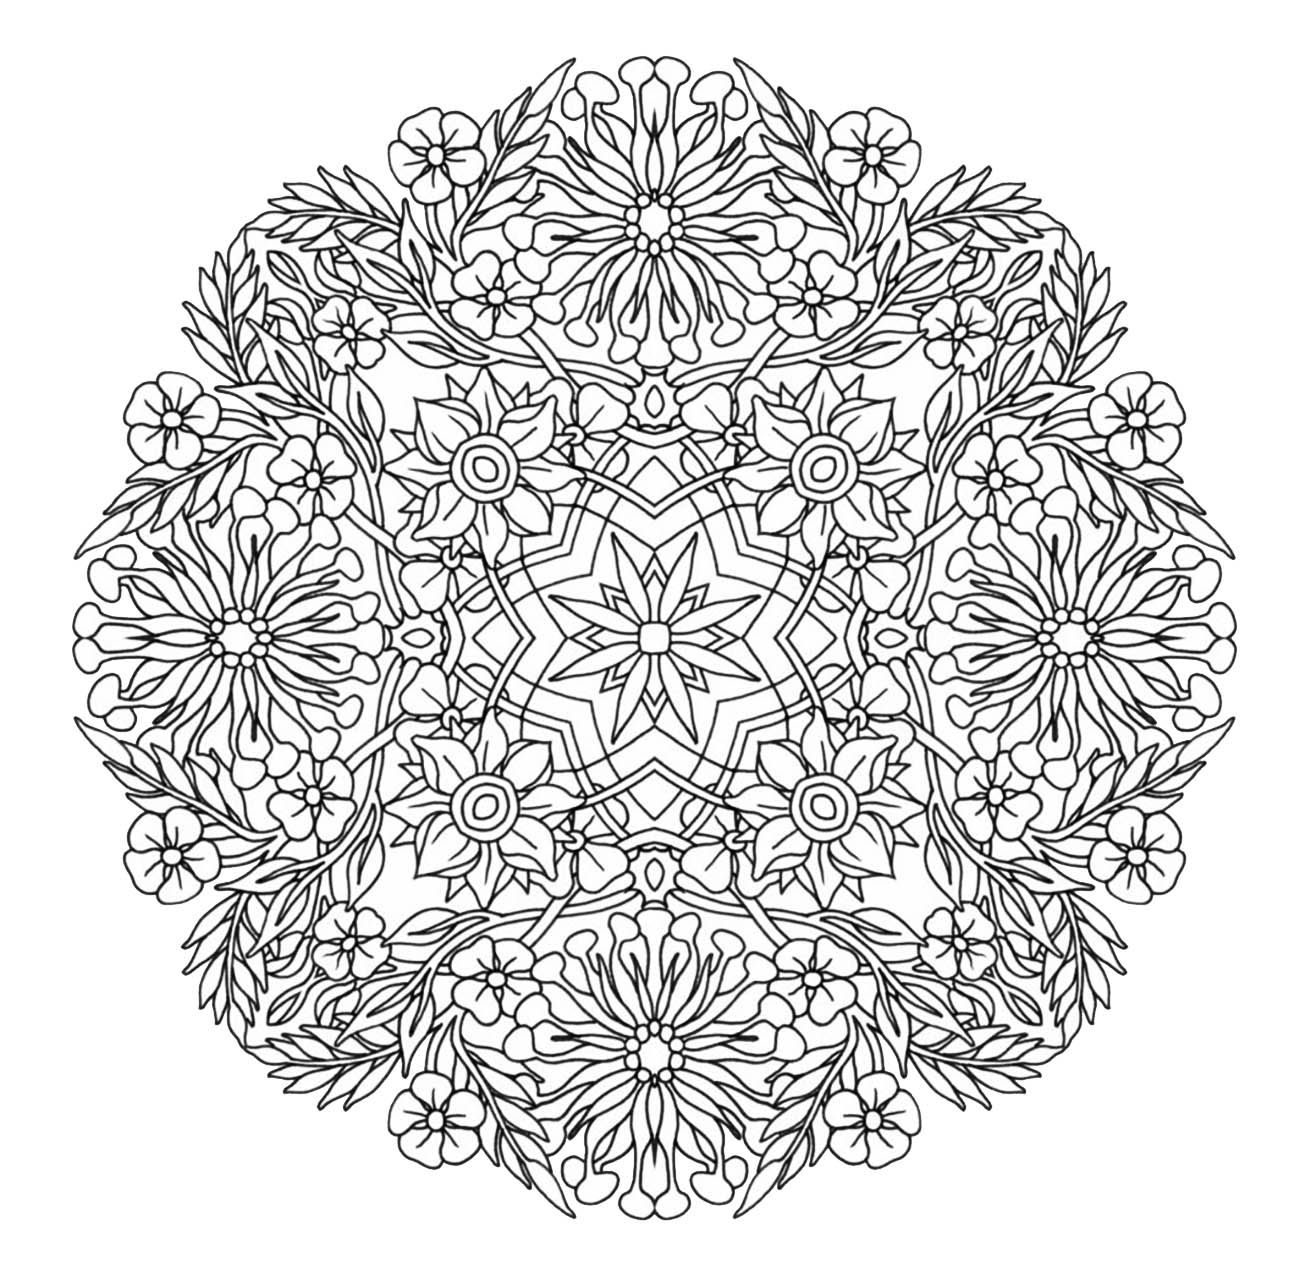 Mandala To Download In Pdf 9from The Gallery Mandalas Coloring